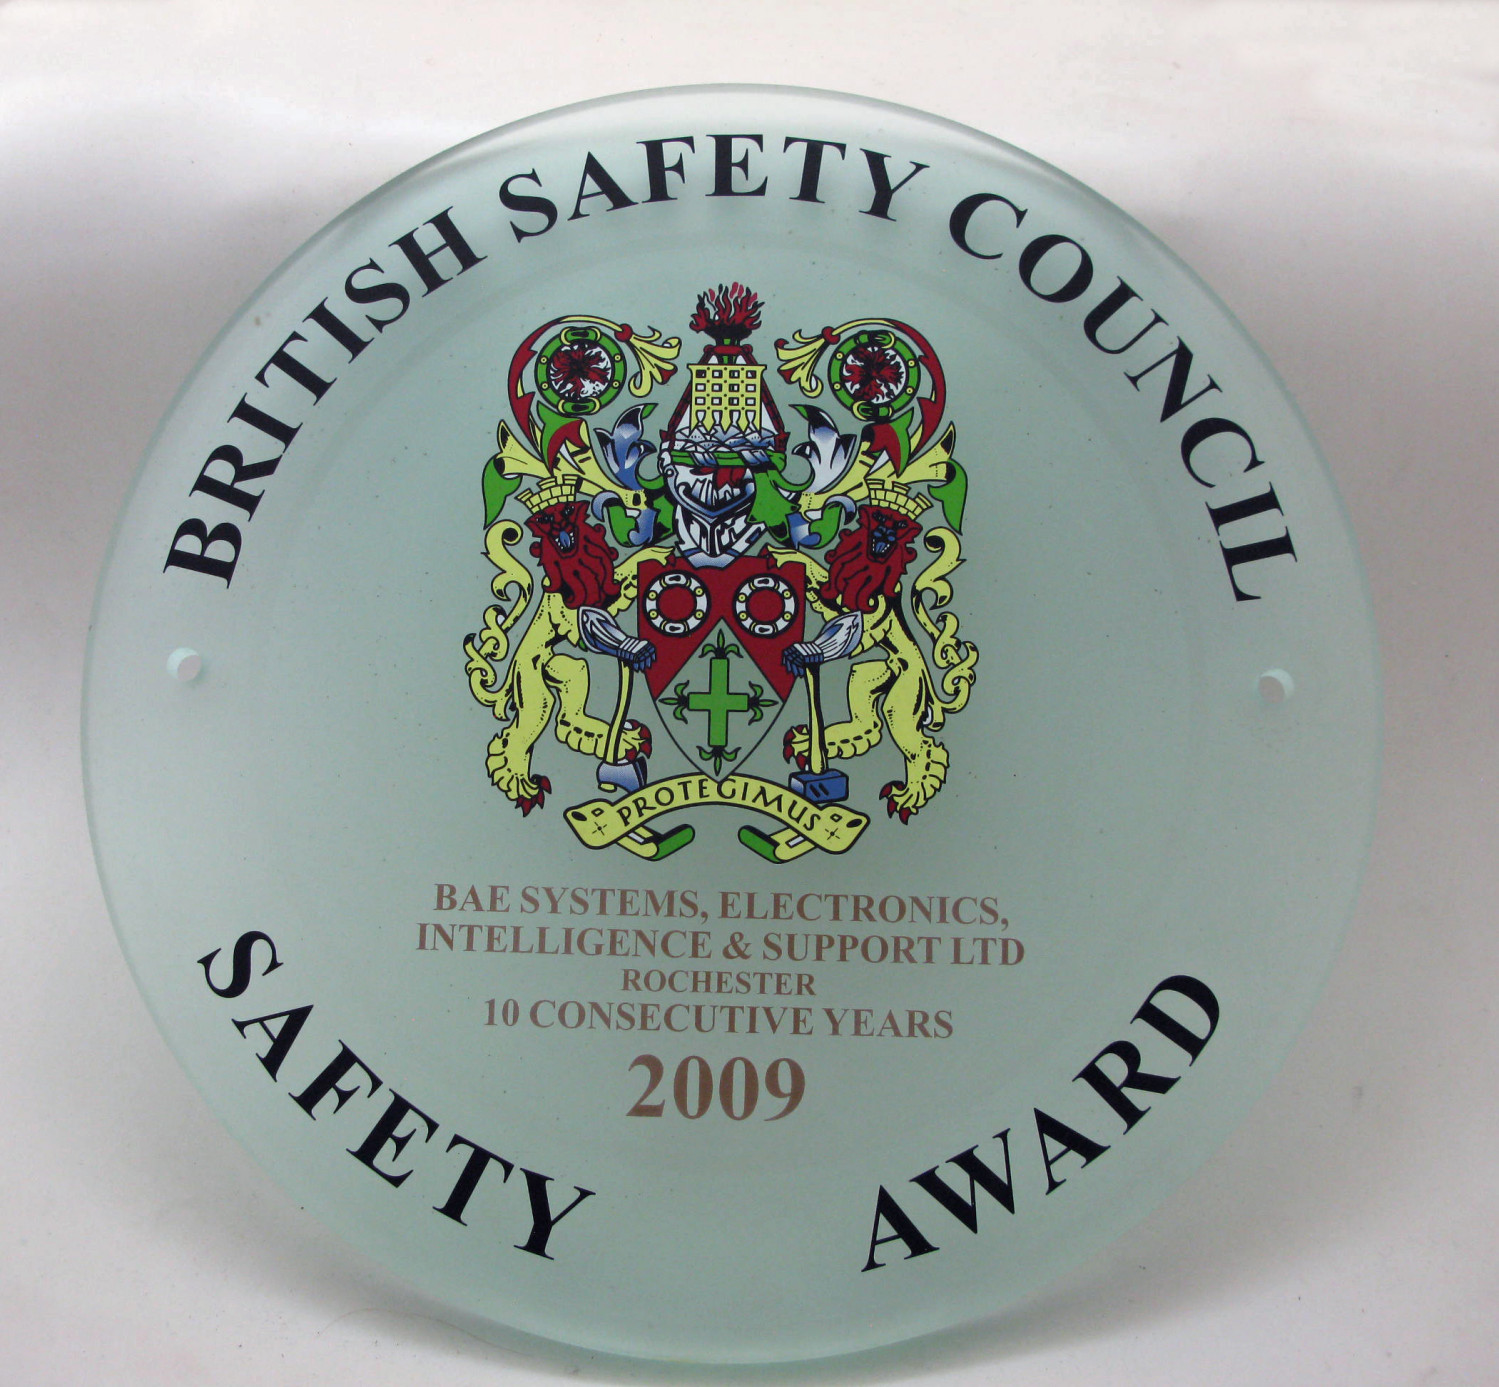 Safety Award 2009